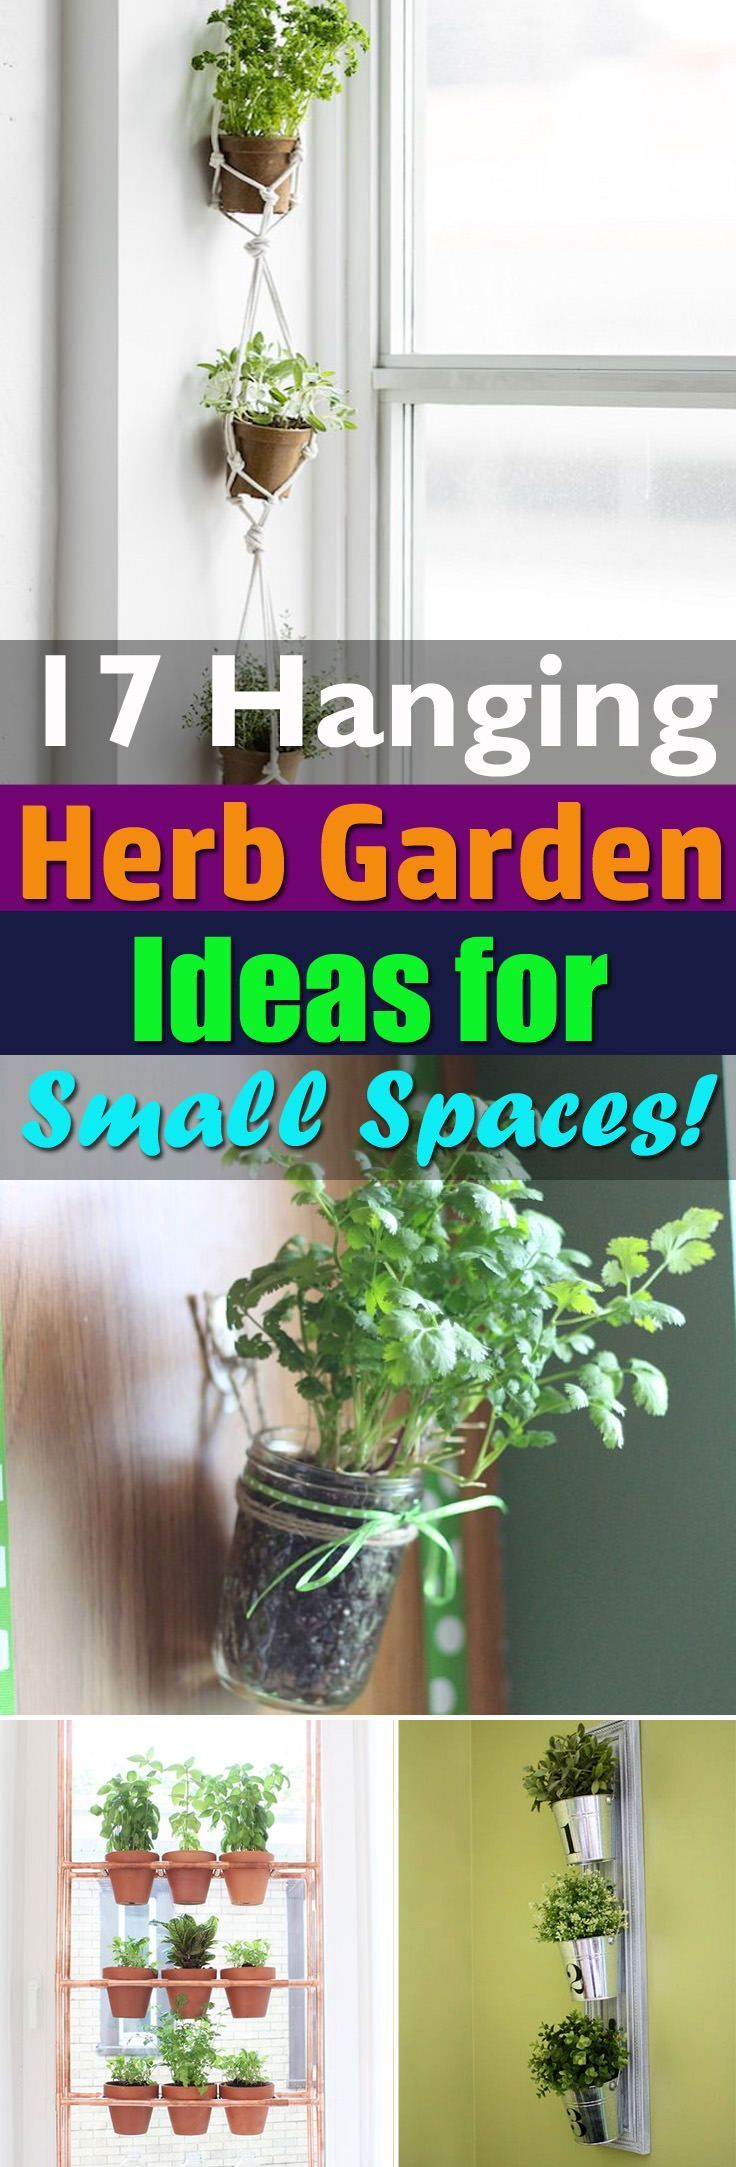 If space is premium but you still want to grow your favorite herbs then try these 17 Hanging Herb Garden Ideas! #smallherbgardens